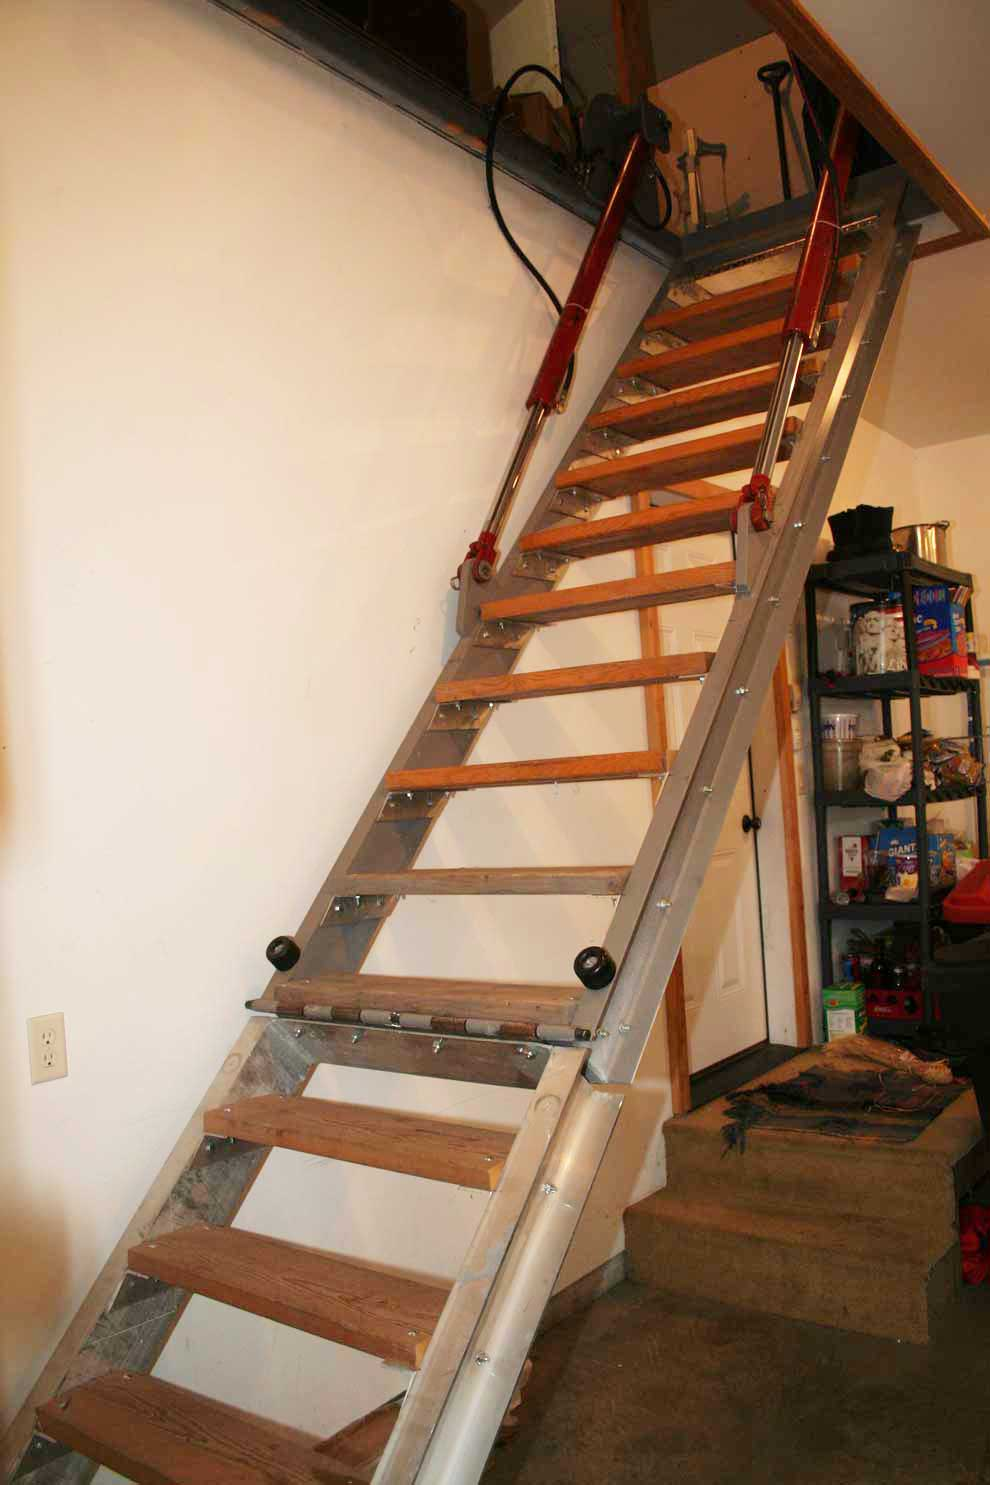 Hydraulic operated stairs